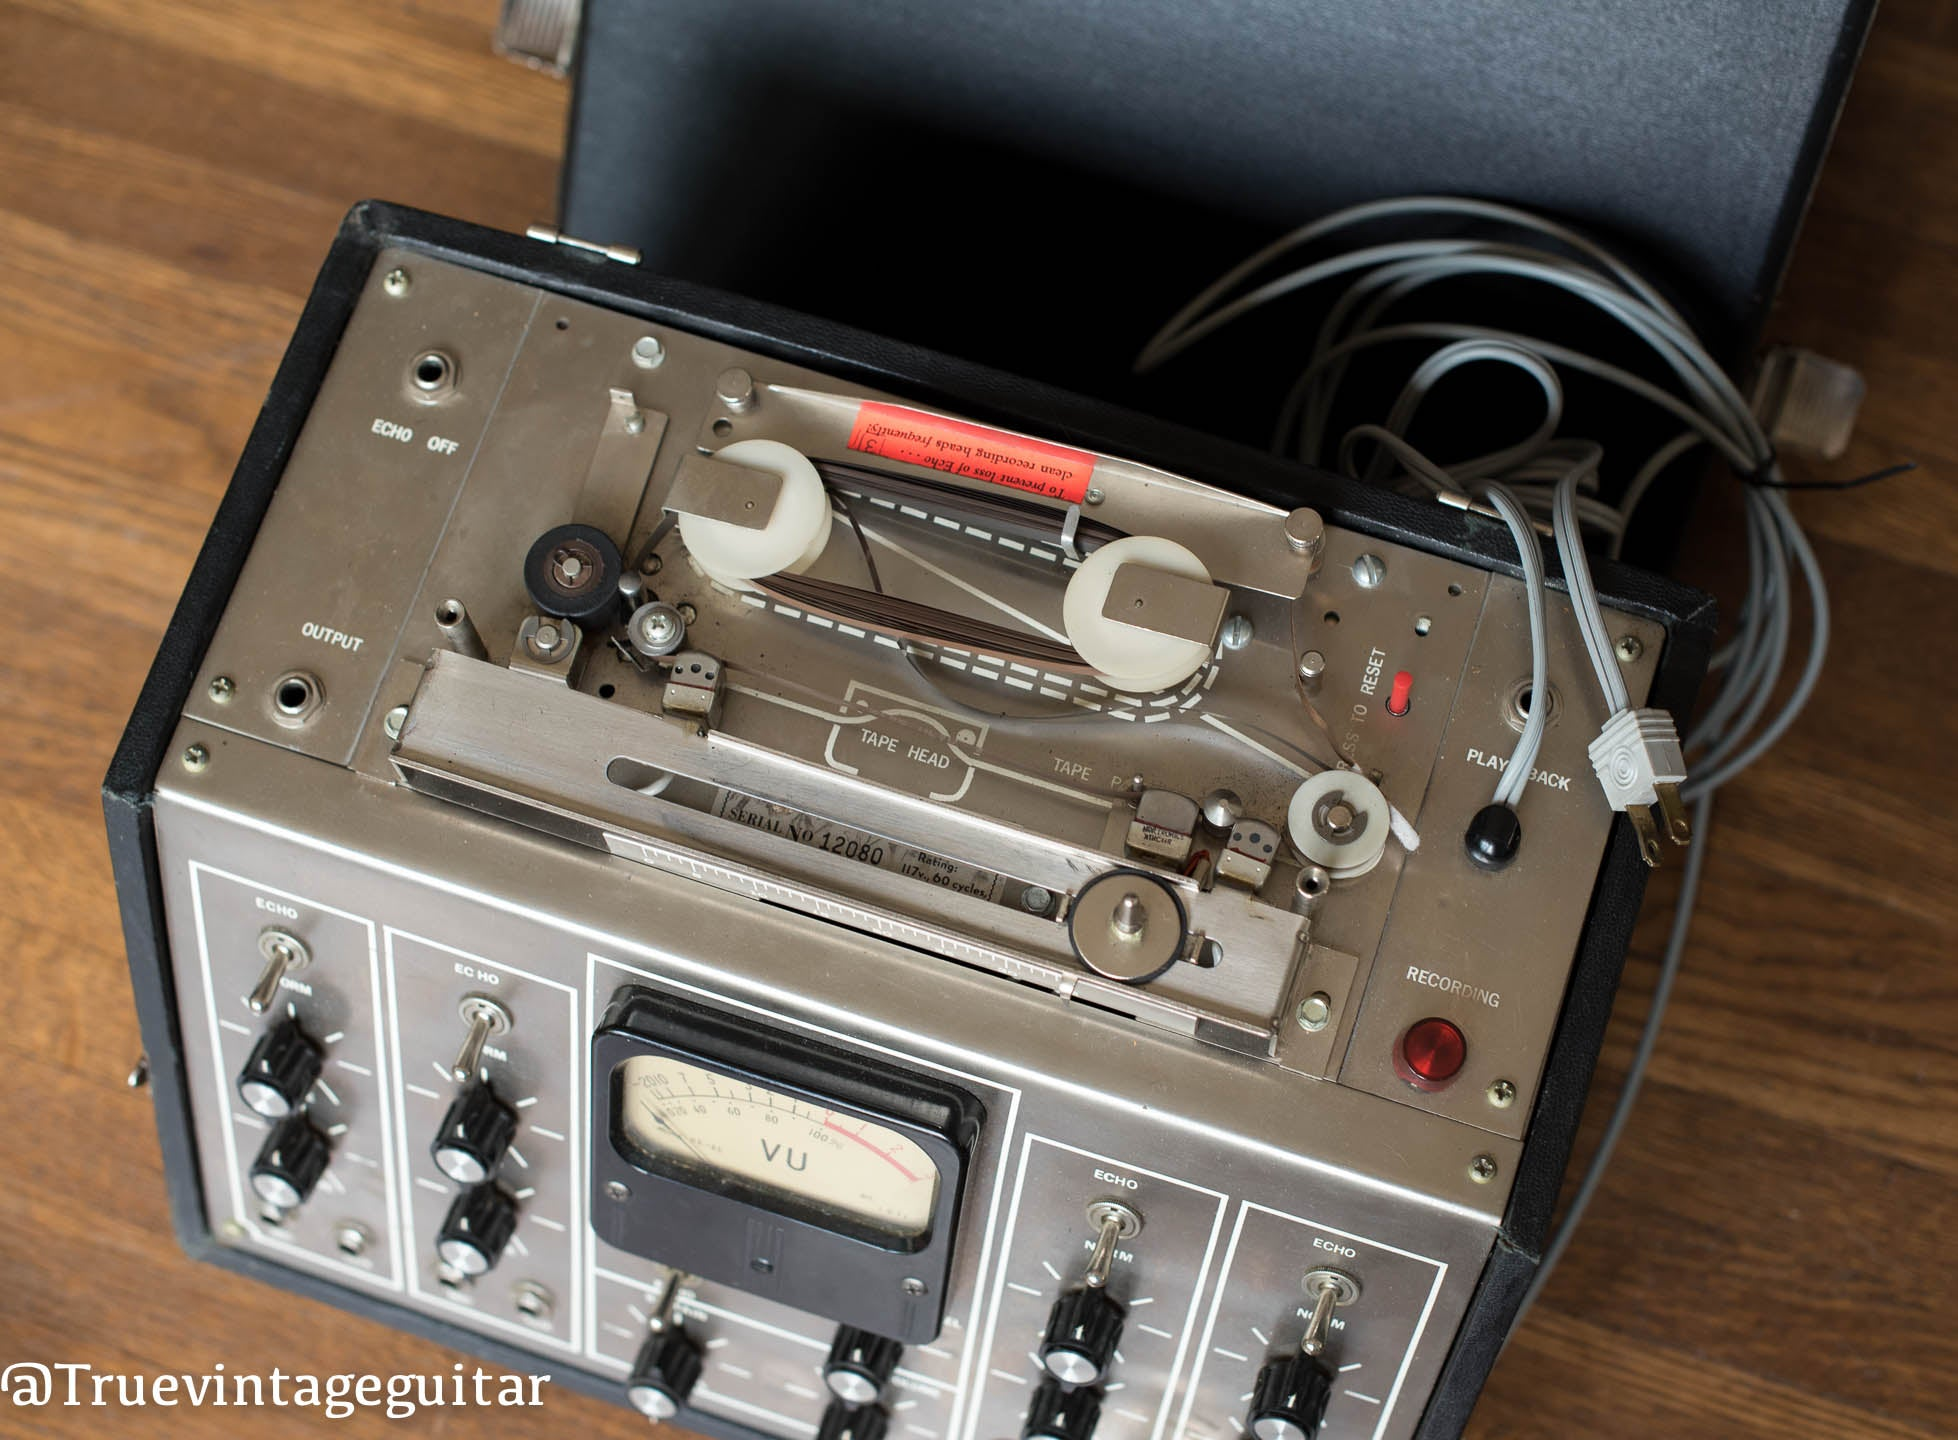 tape cartridge, tape machine, Echoplex Groupmaster